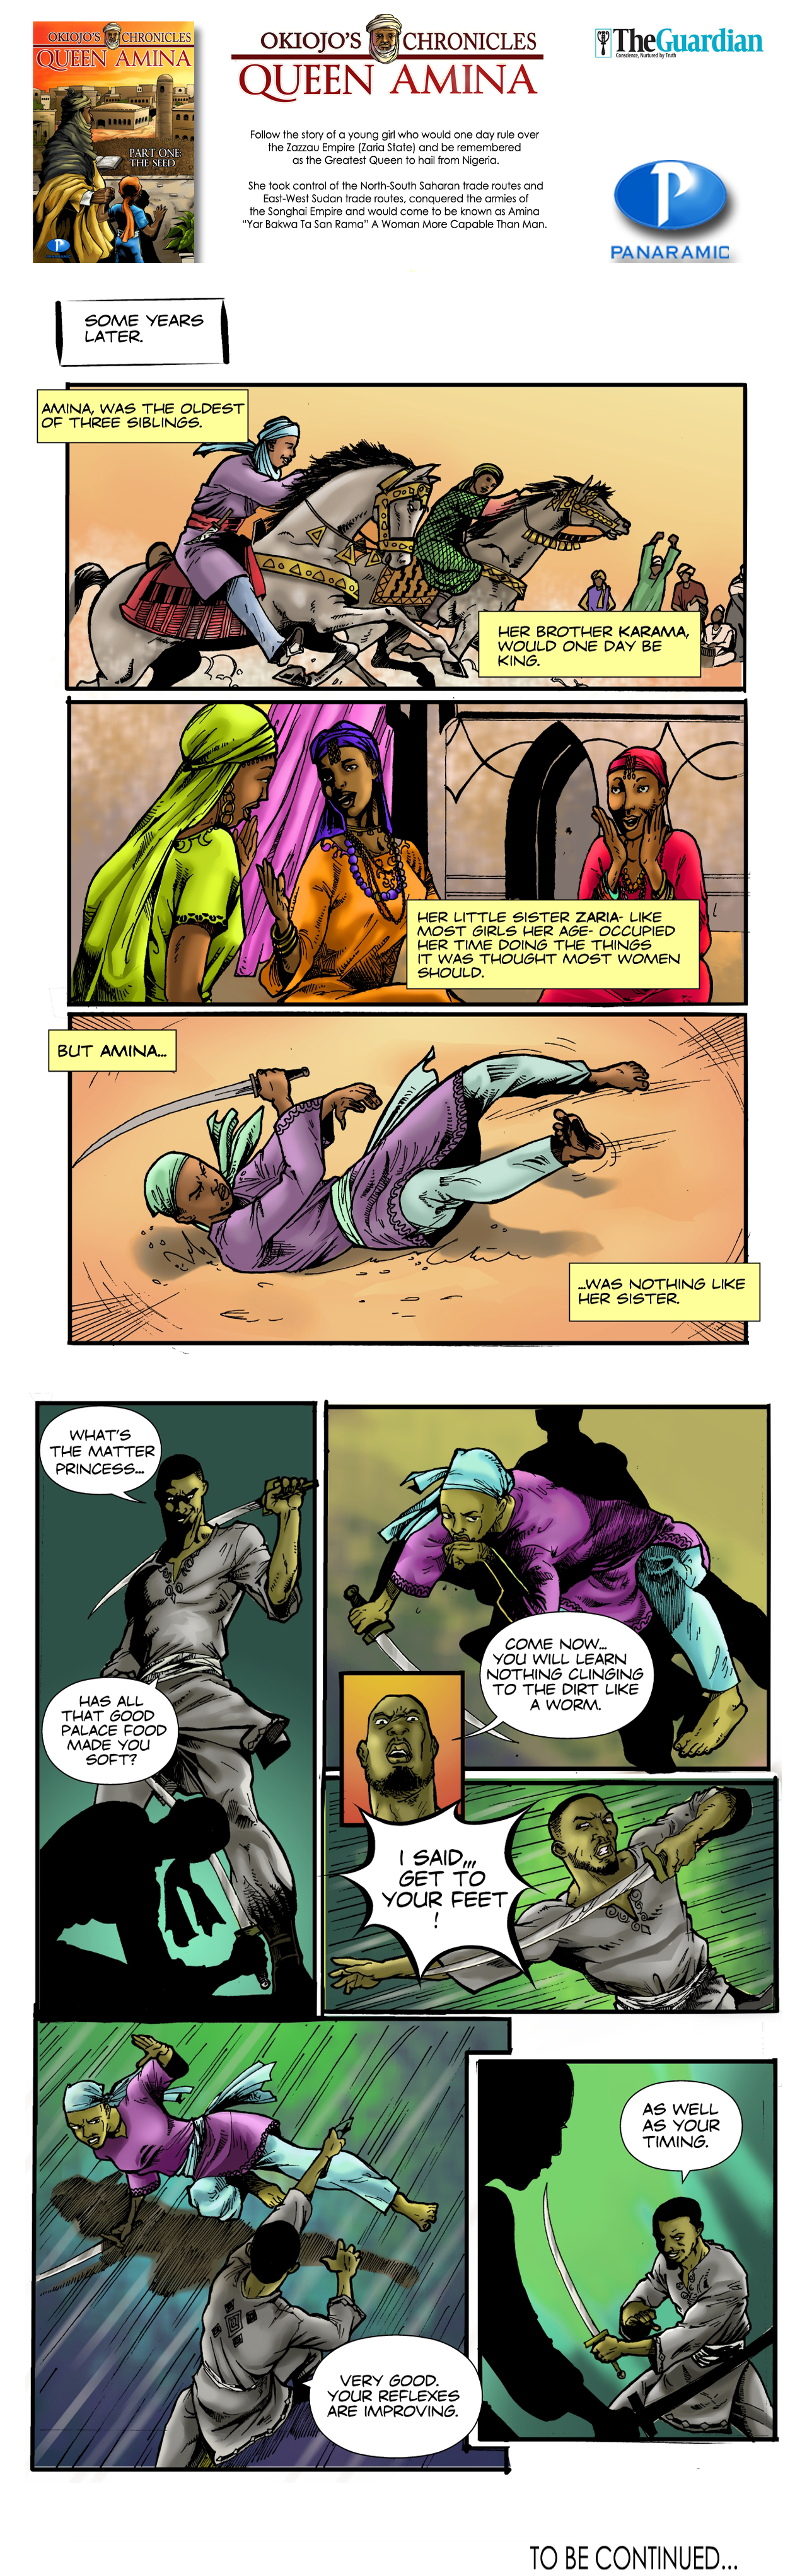 Queen Amina (Part 1) - 7